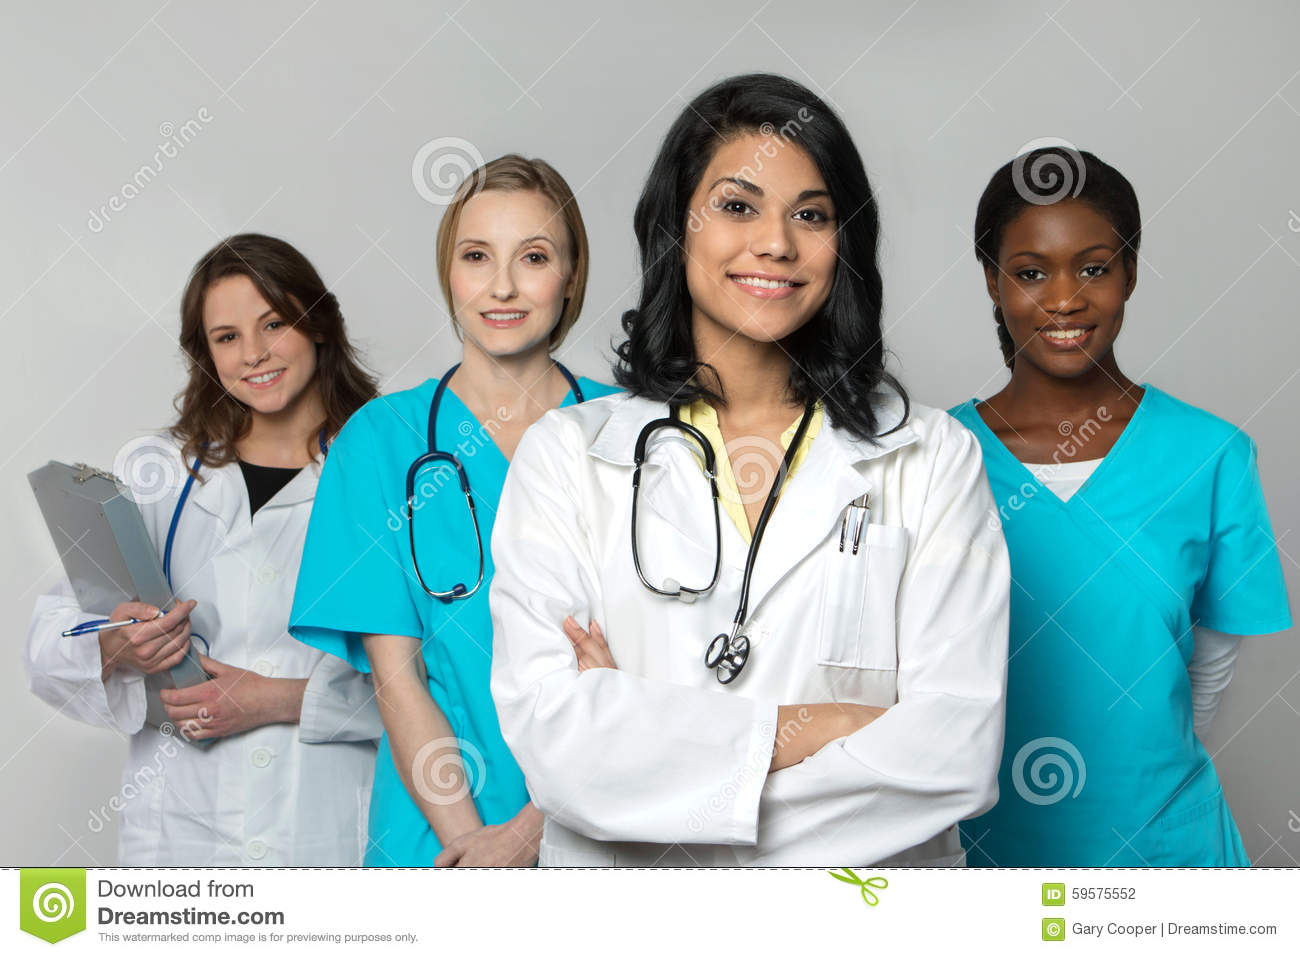 Diverse group of Health Care Professionals